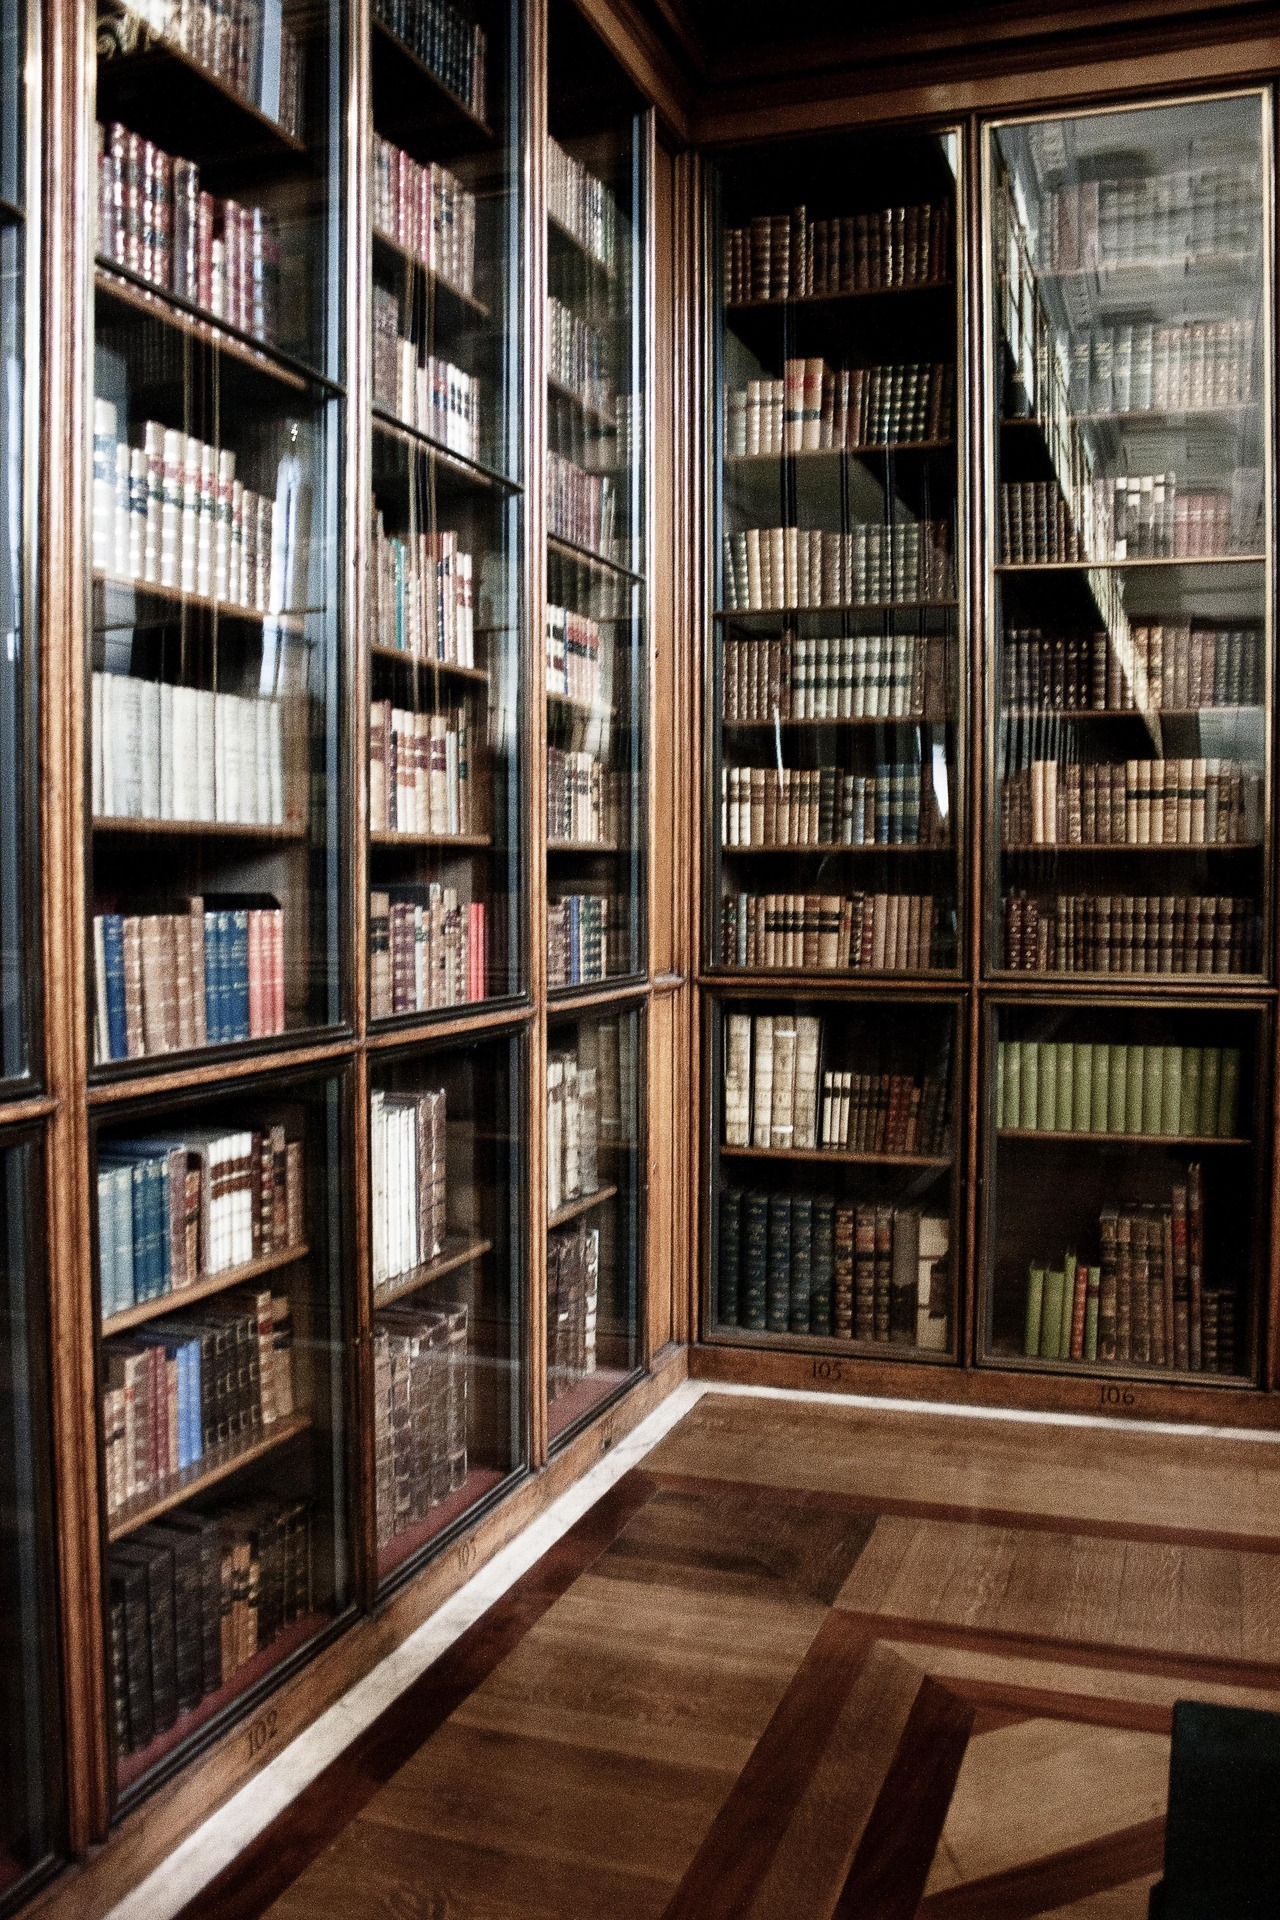 Bookshelf in the British Museum, London.